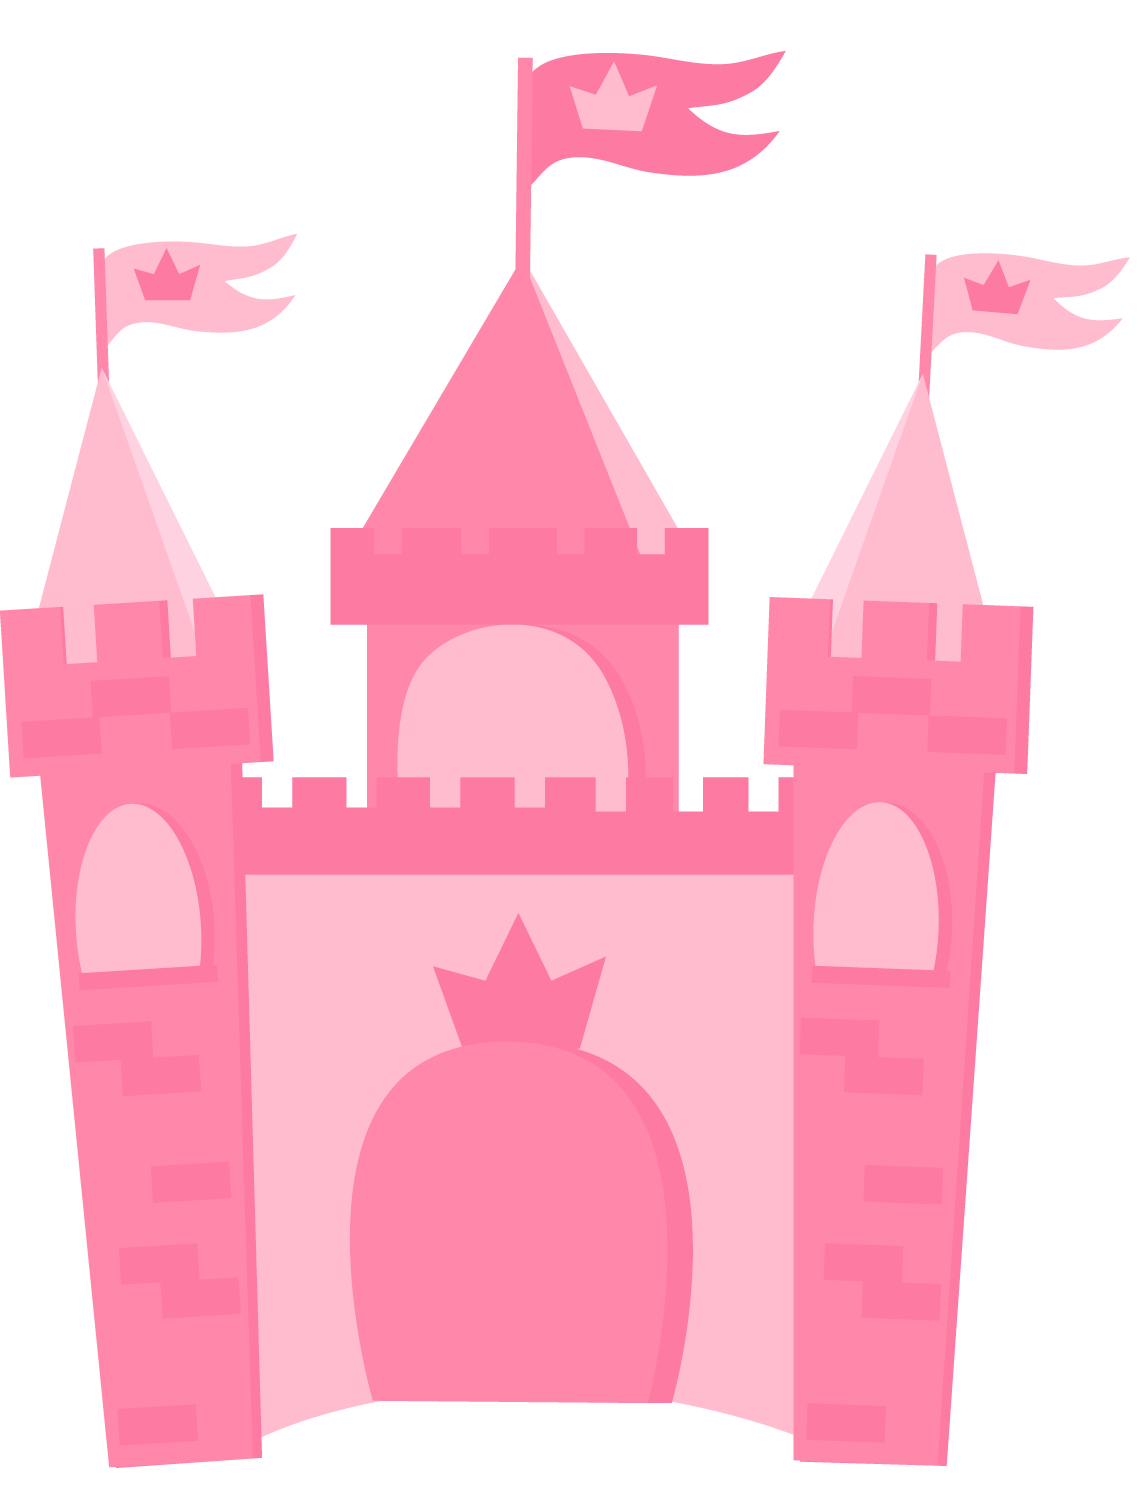 fairy castle pictures clipart best disney castle clip art free disney castle clip art for t shirt